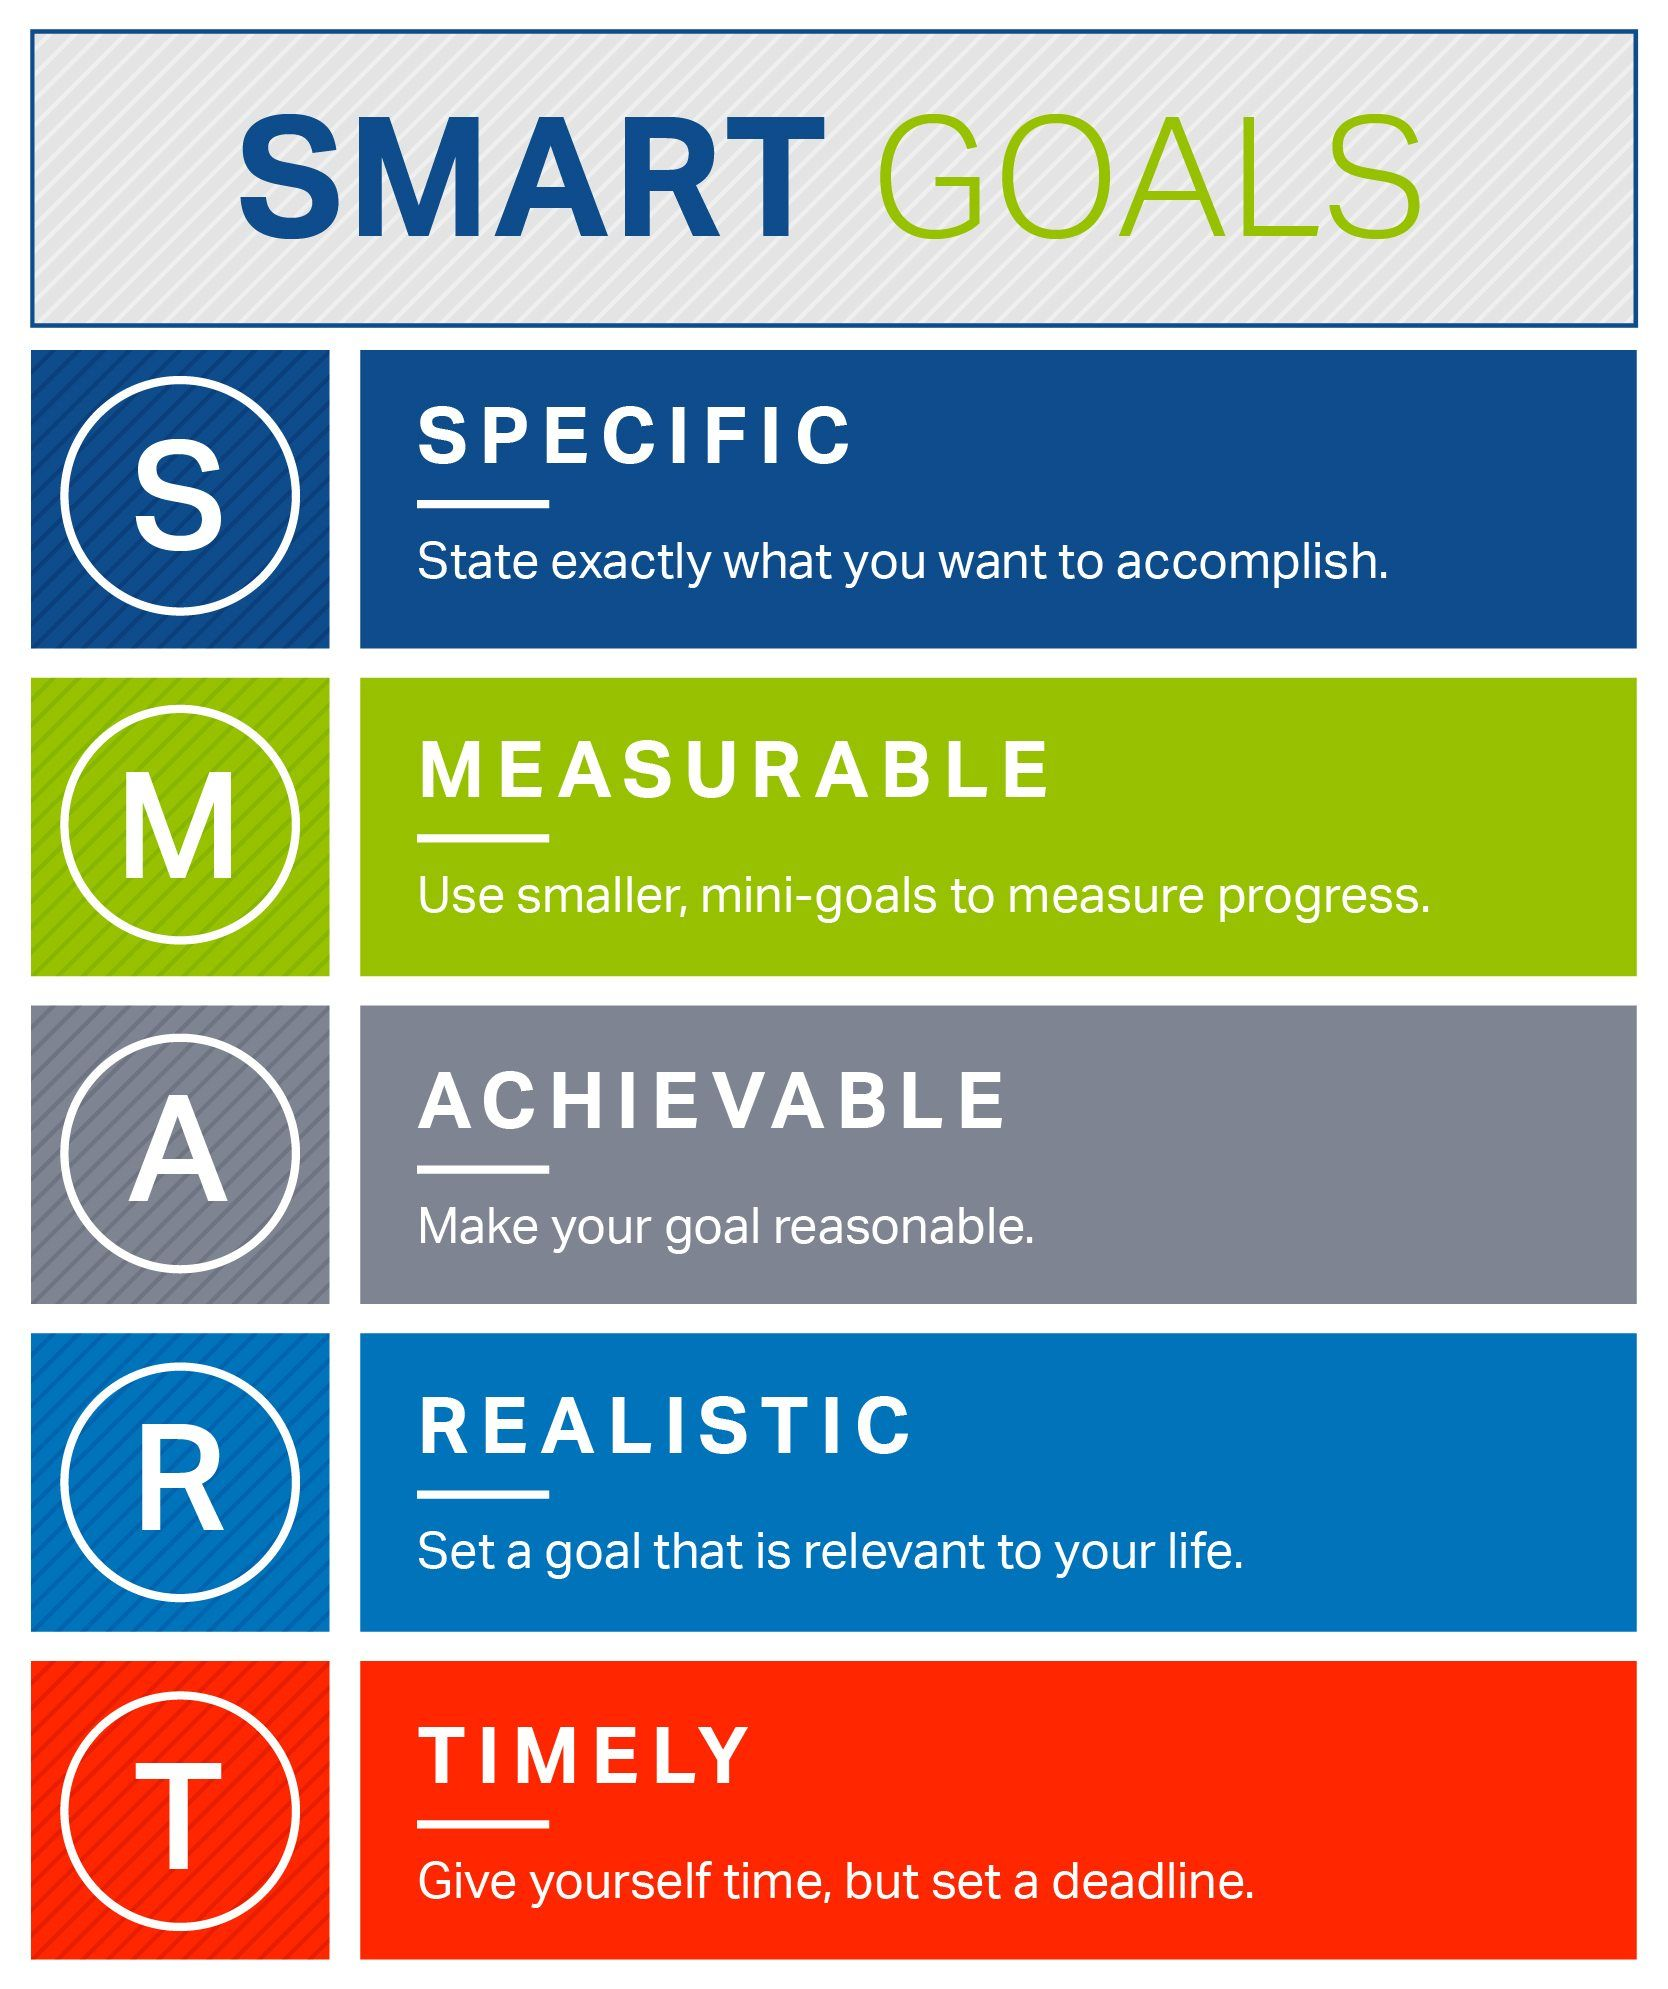 Want to Crush Your Goals? Get SMART (With images) | Smart ...